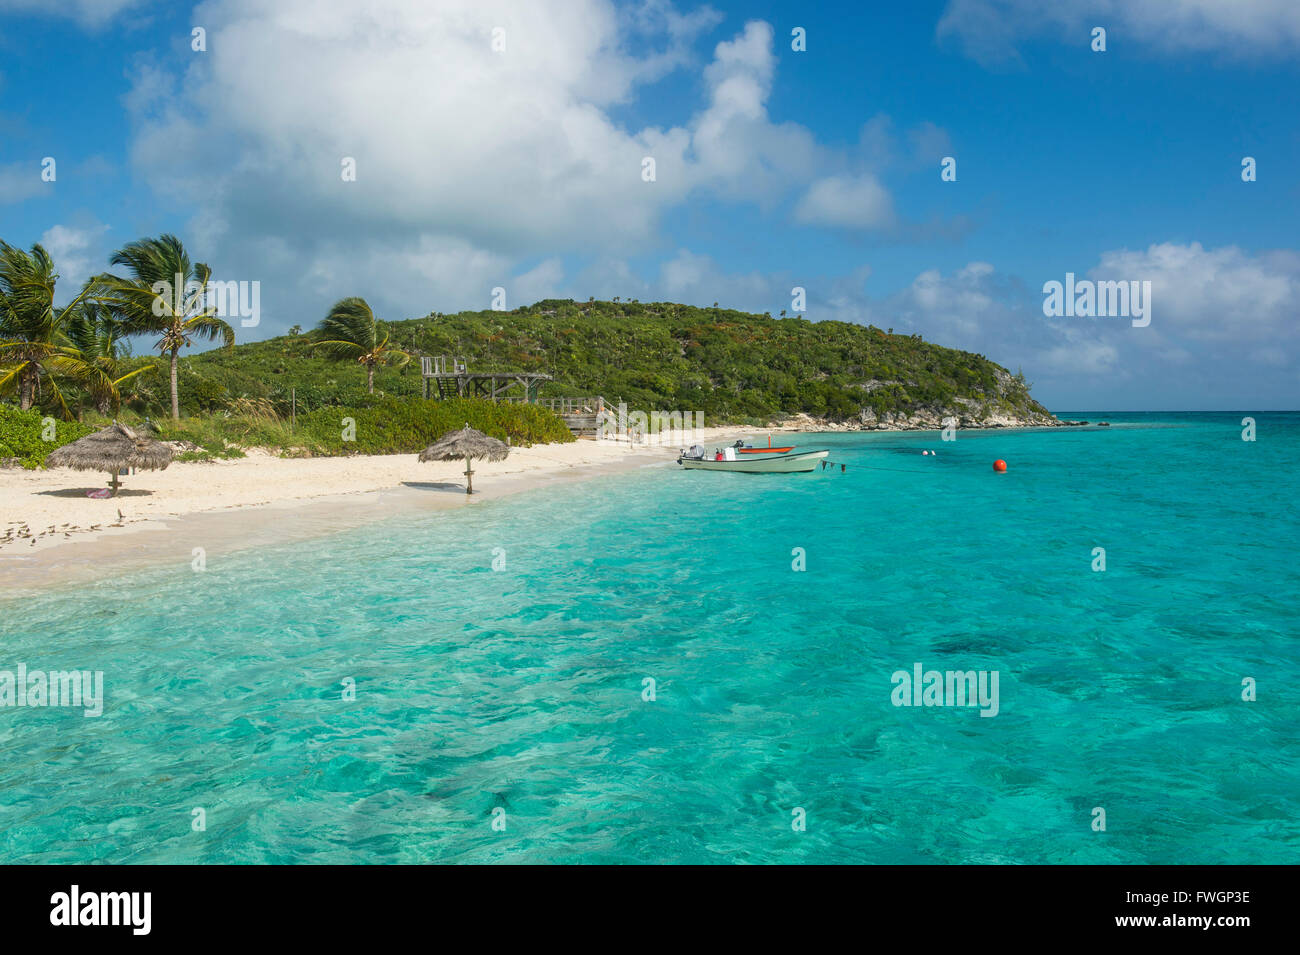 Turquoise waters and a white sand beach, Exumas, Bahamas, West Indies, Caribbean, Central America - Stock Image